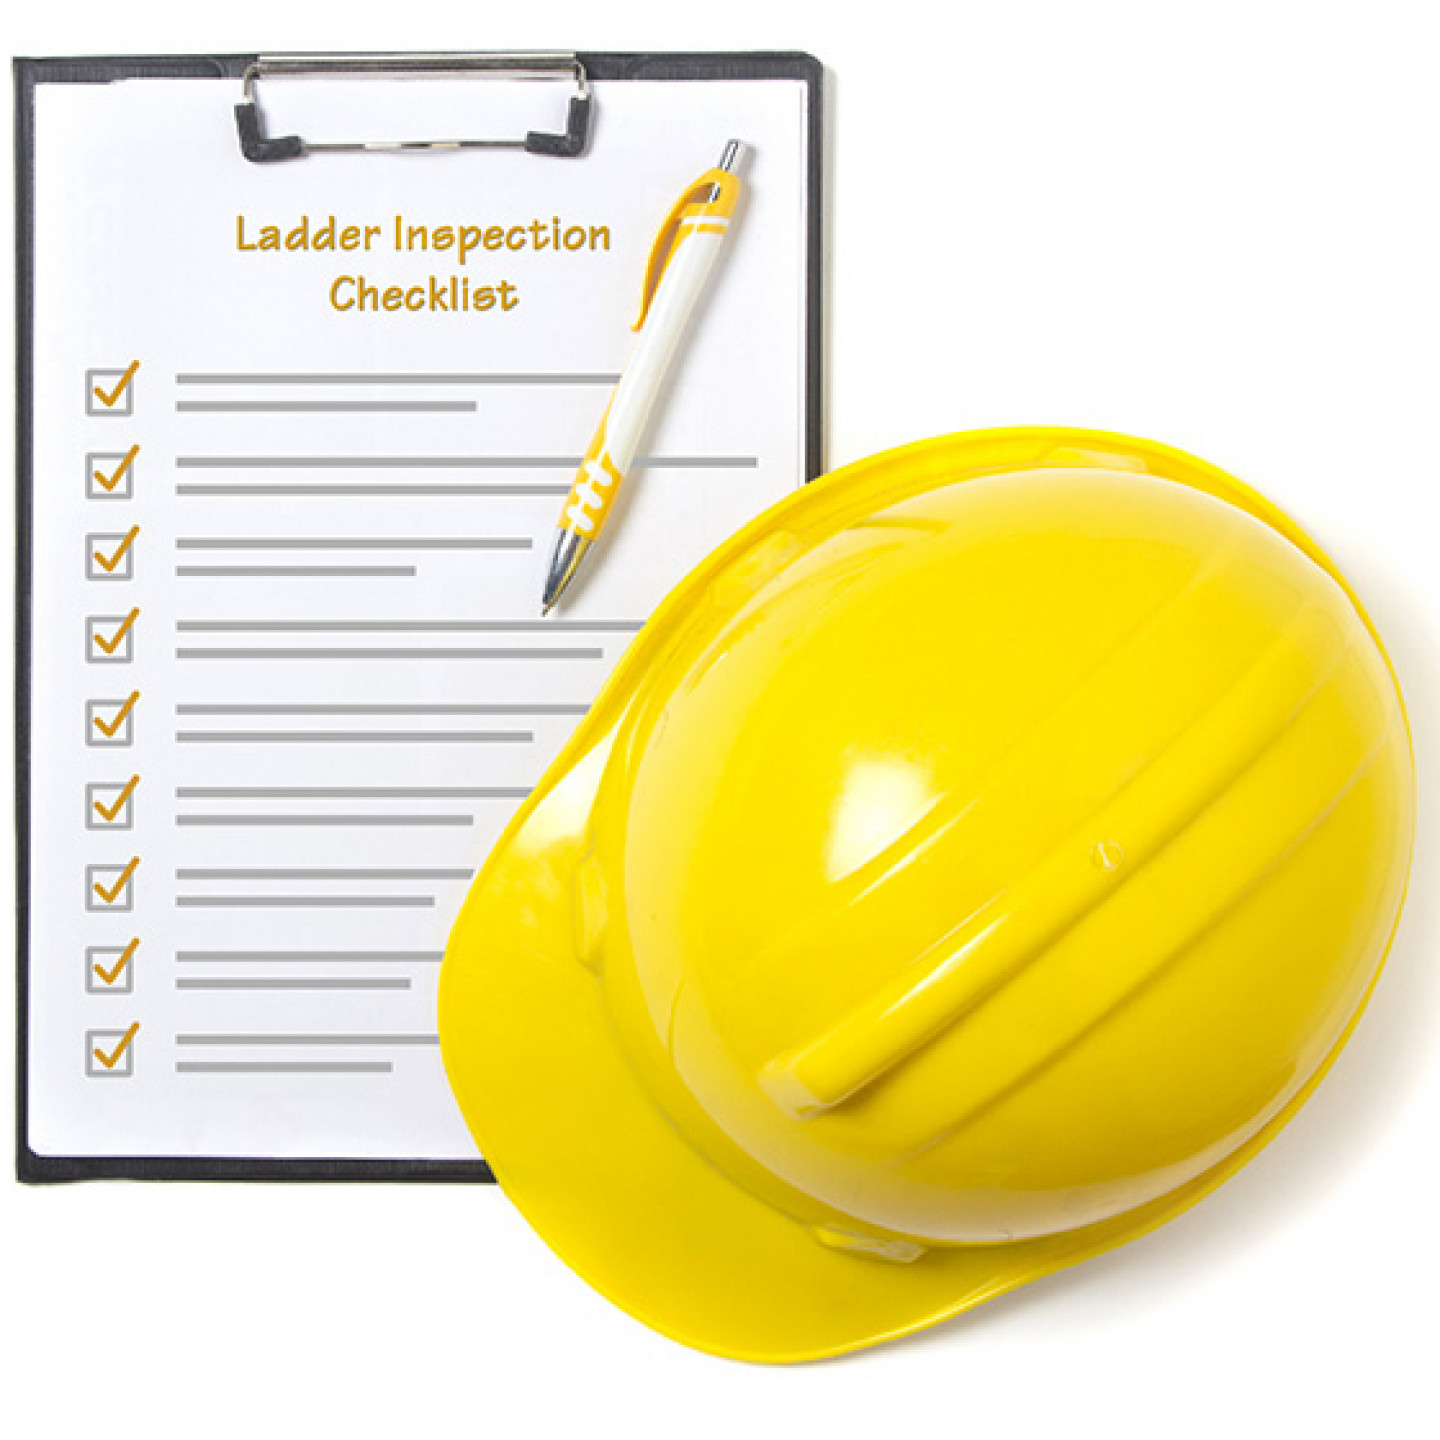 checklist-with-hard-hat